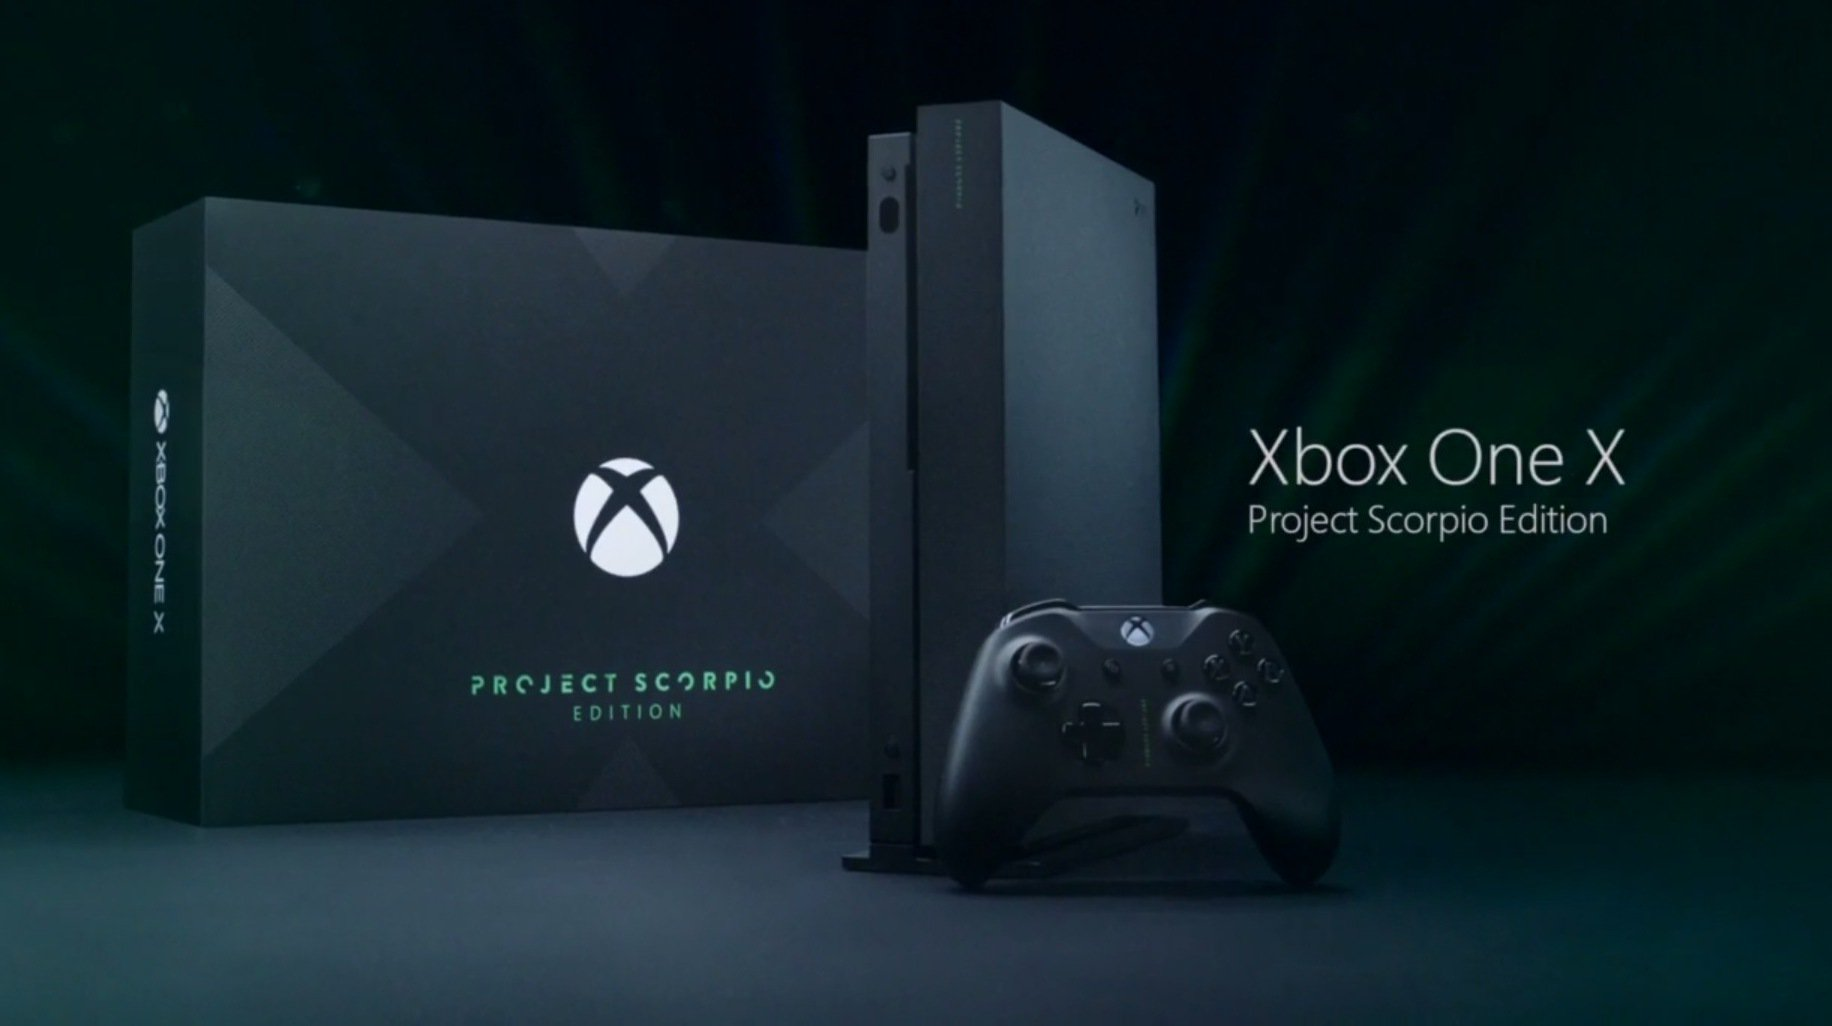 The Project Scorpio Name Lives On Through A Special Edition Xbox One X